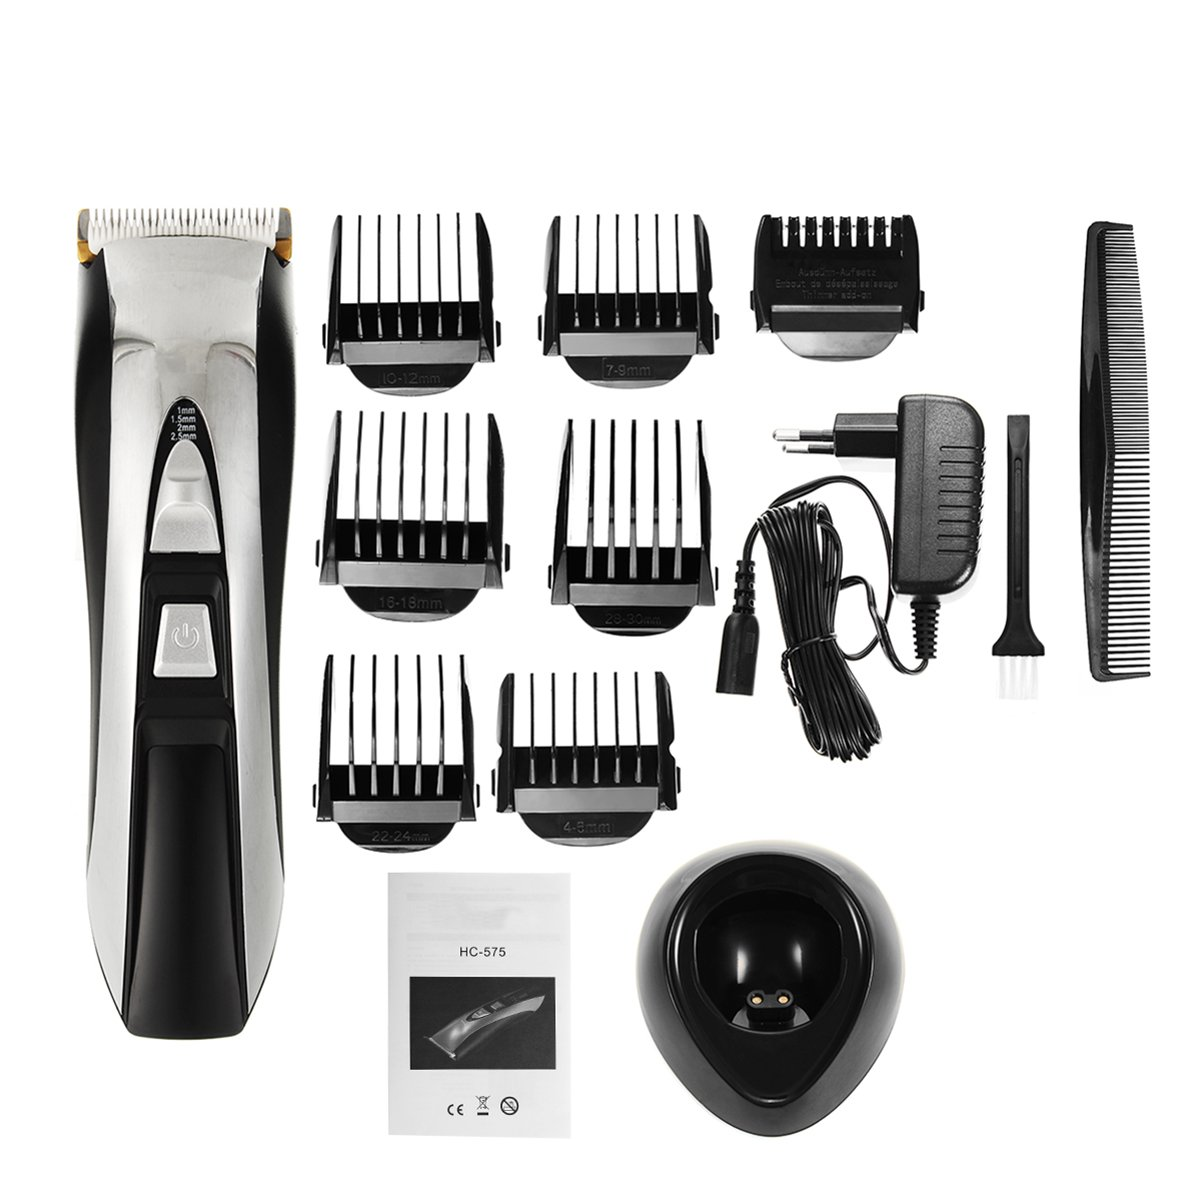 Professional Hair Clipper With Original Packaging Blade Hair Cutting Machine For Barber Hair Trimmer rechargeable hair clipper with accessories set 220 240v ac